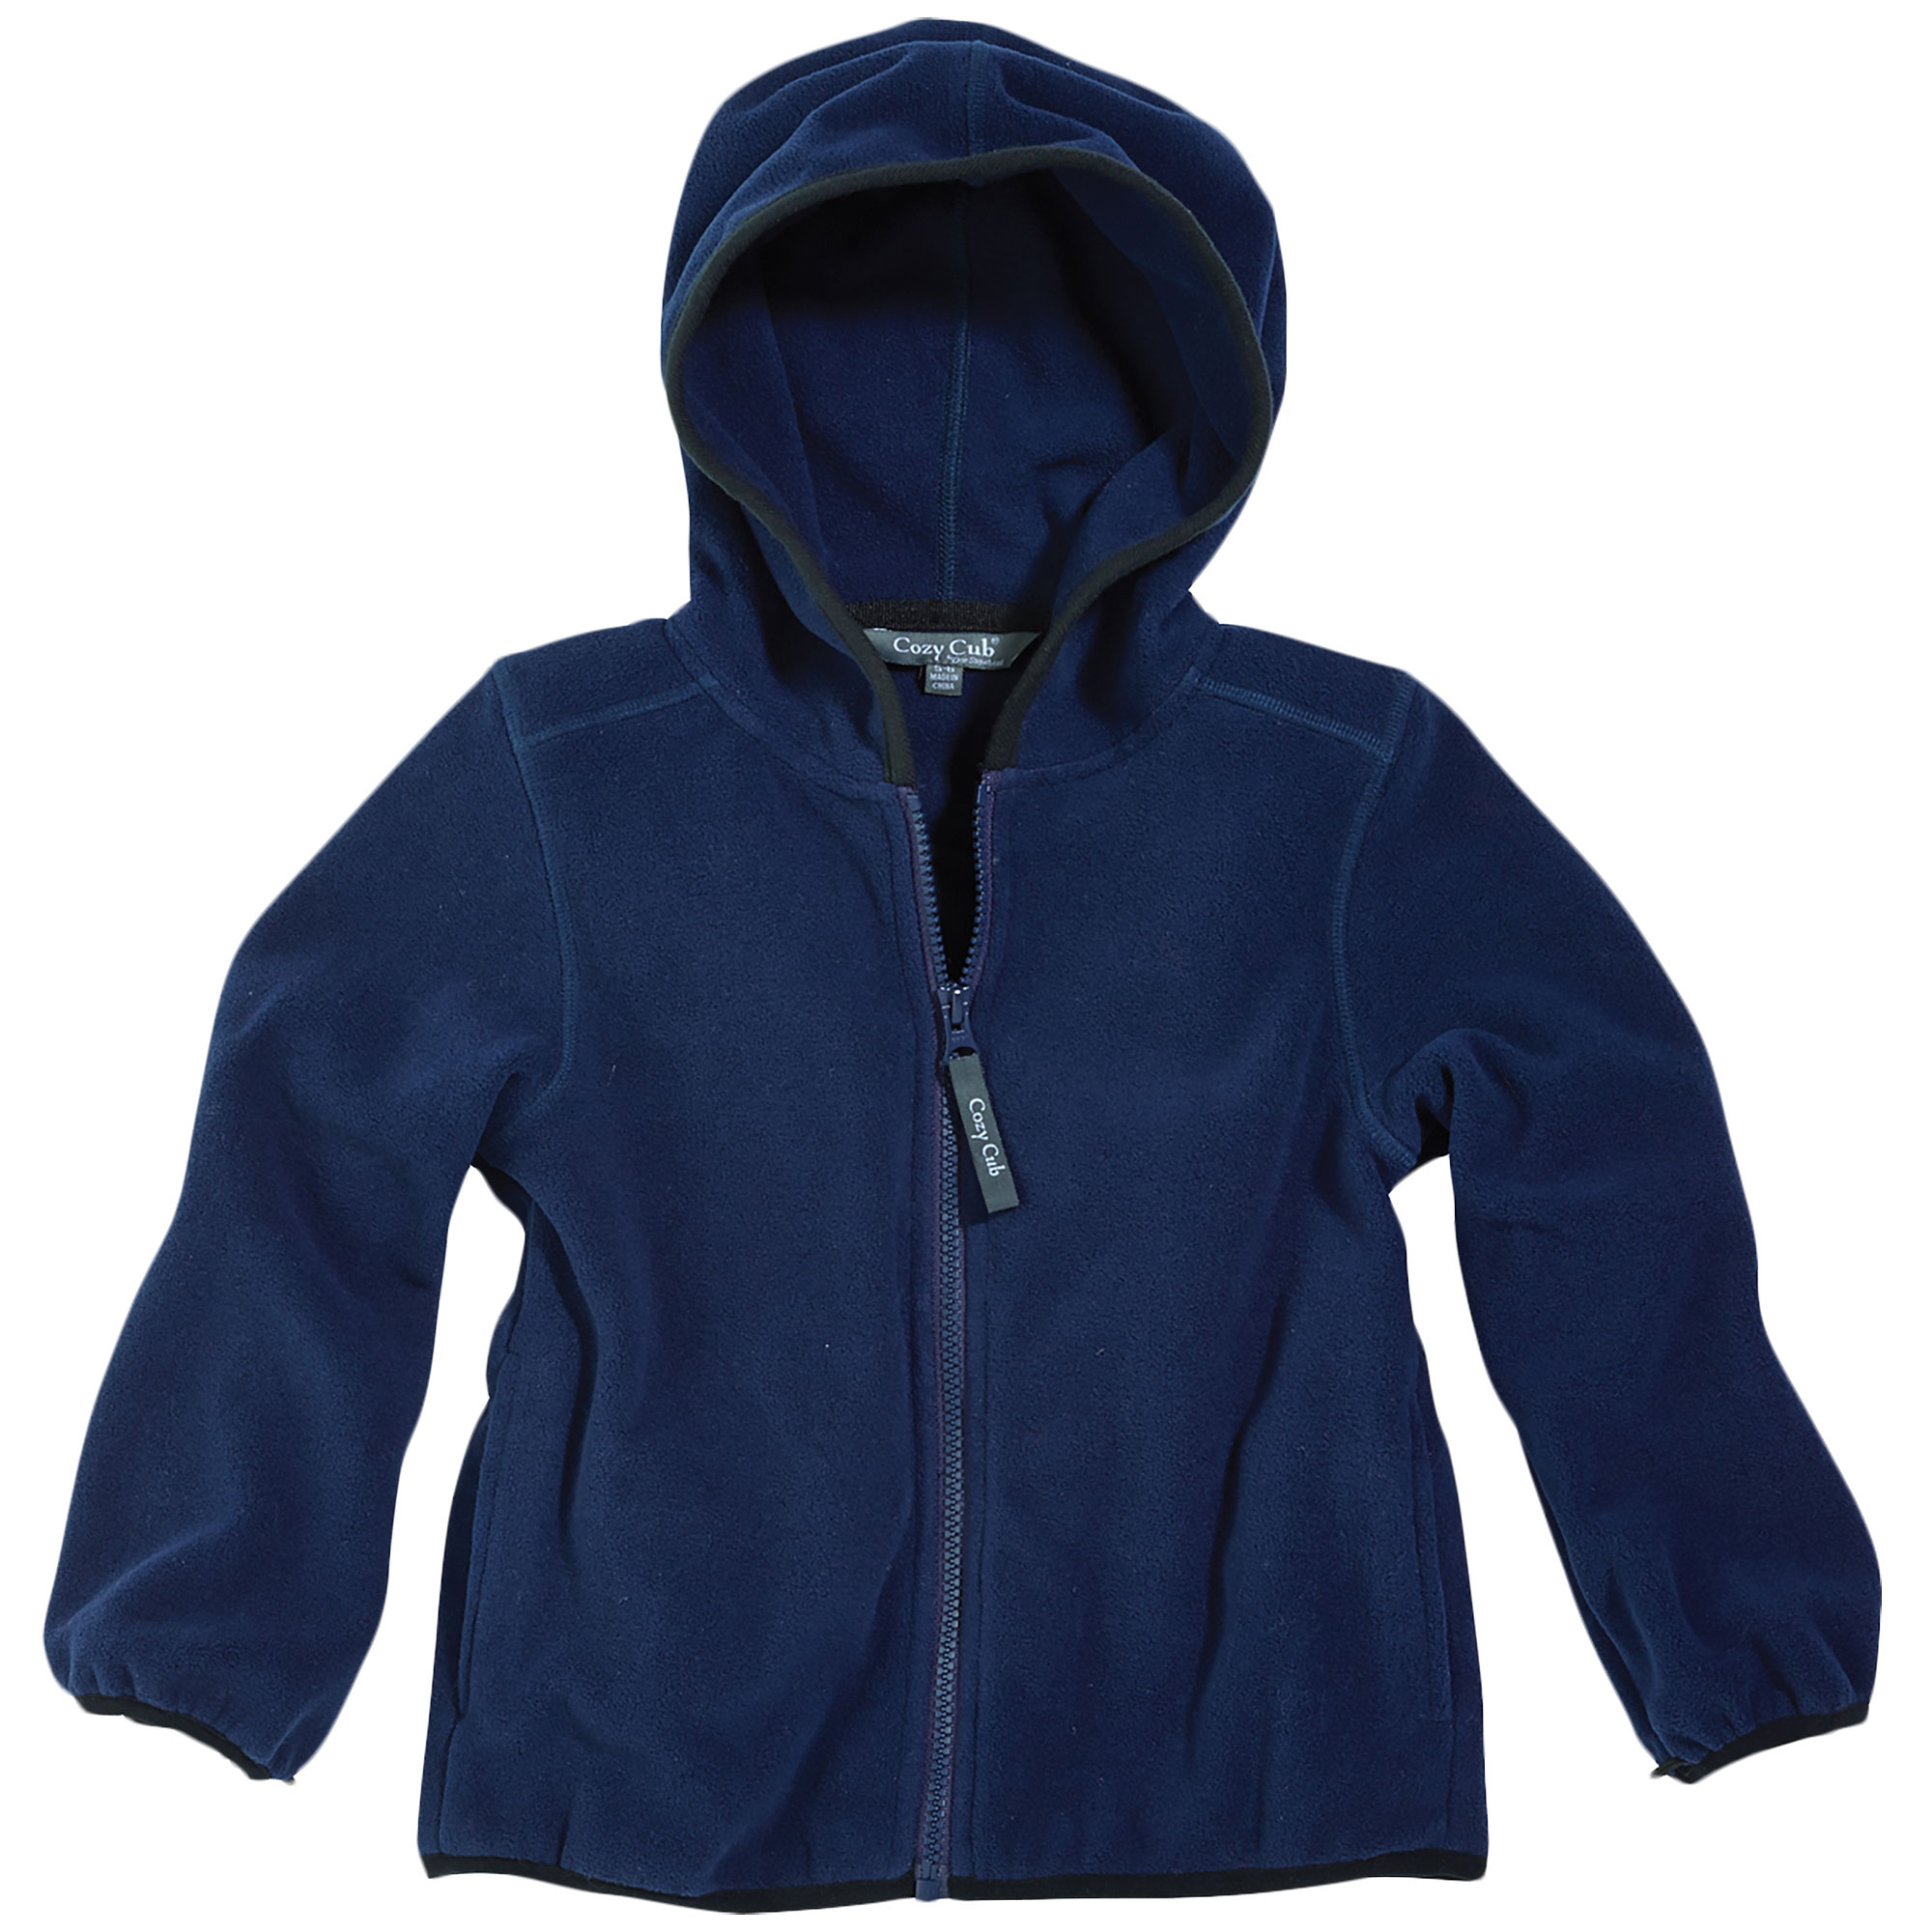 Cozy Cub Baby and Toddler Boy Hooded Fleece Jacket - Polar Fleece All-Season Jacket - Navy Blue